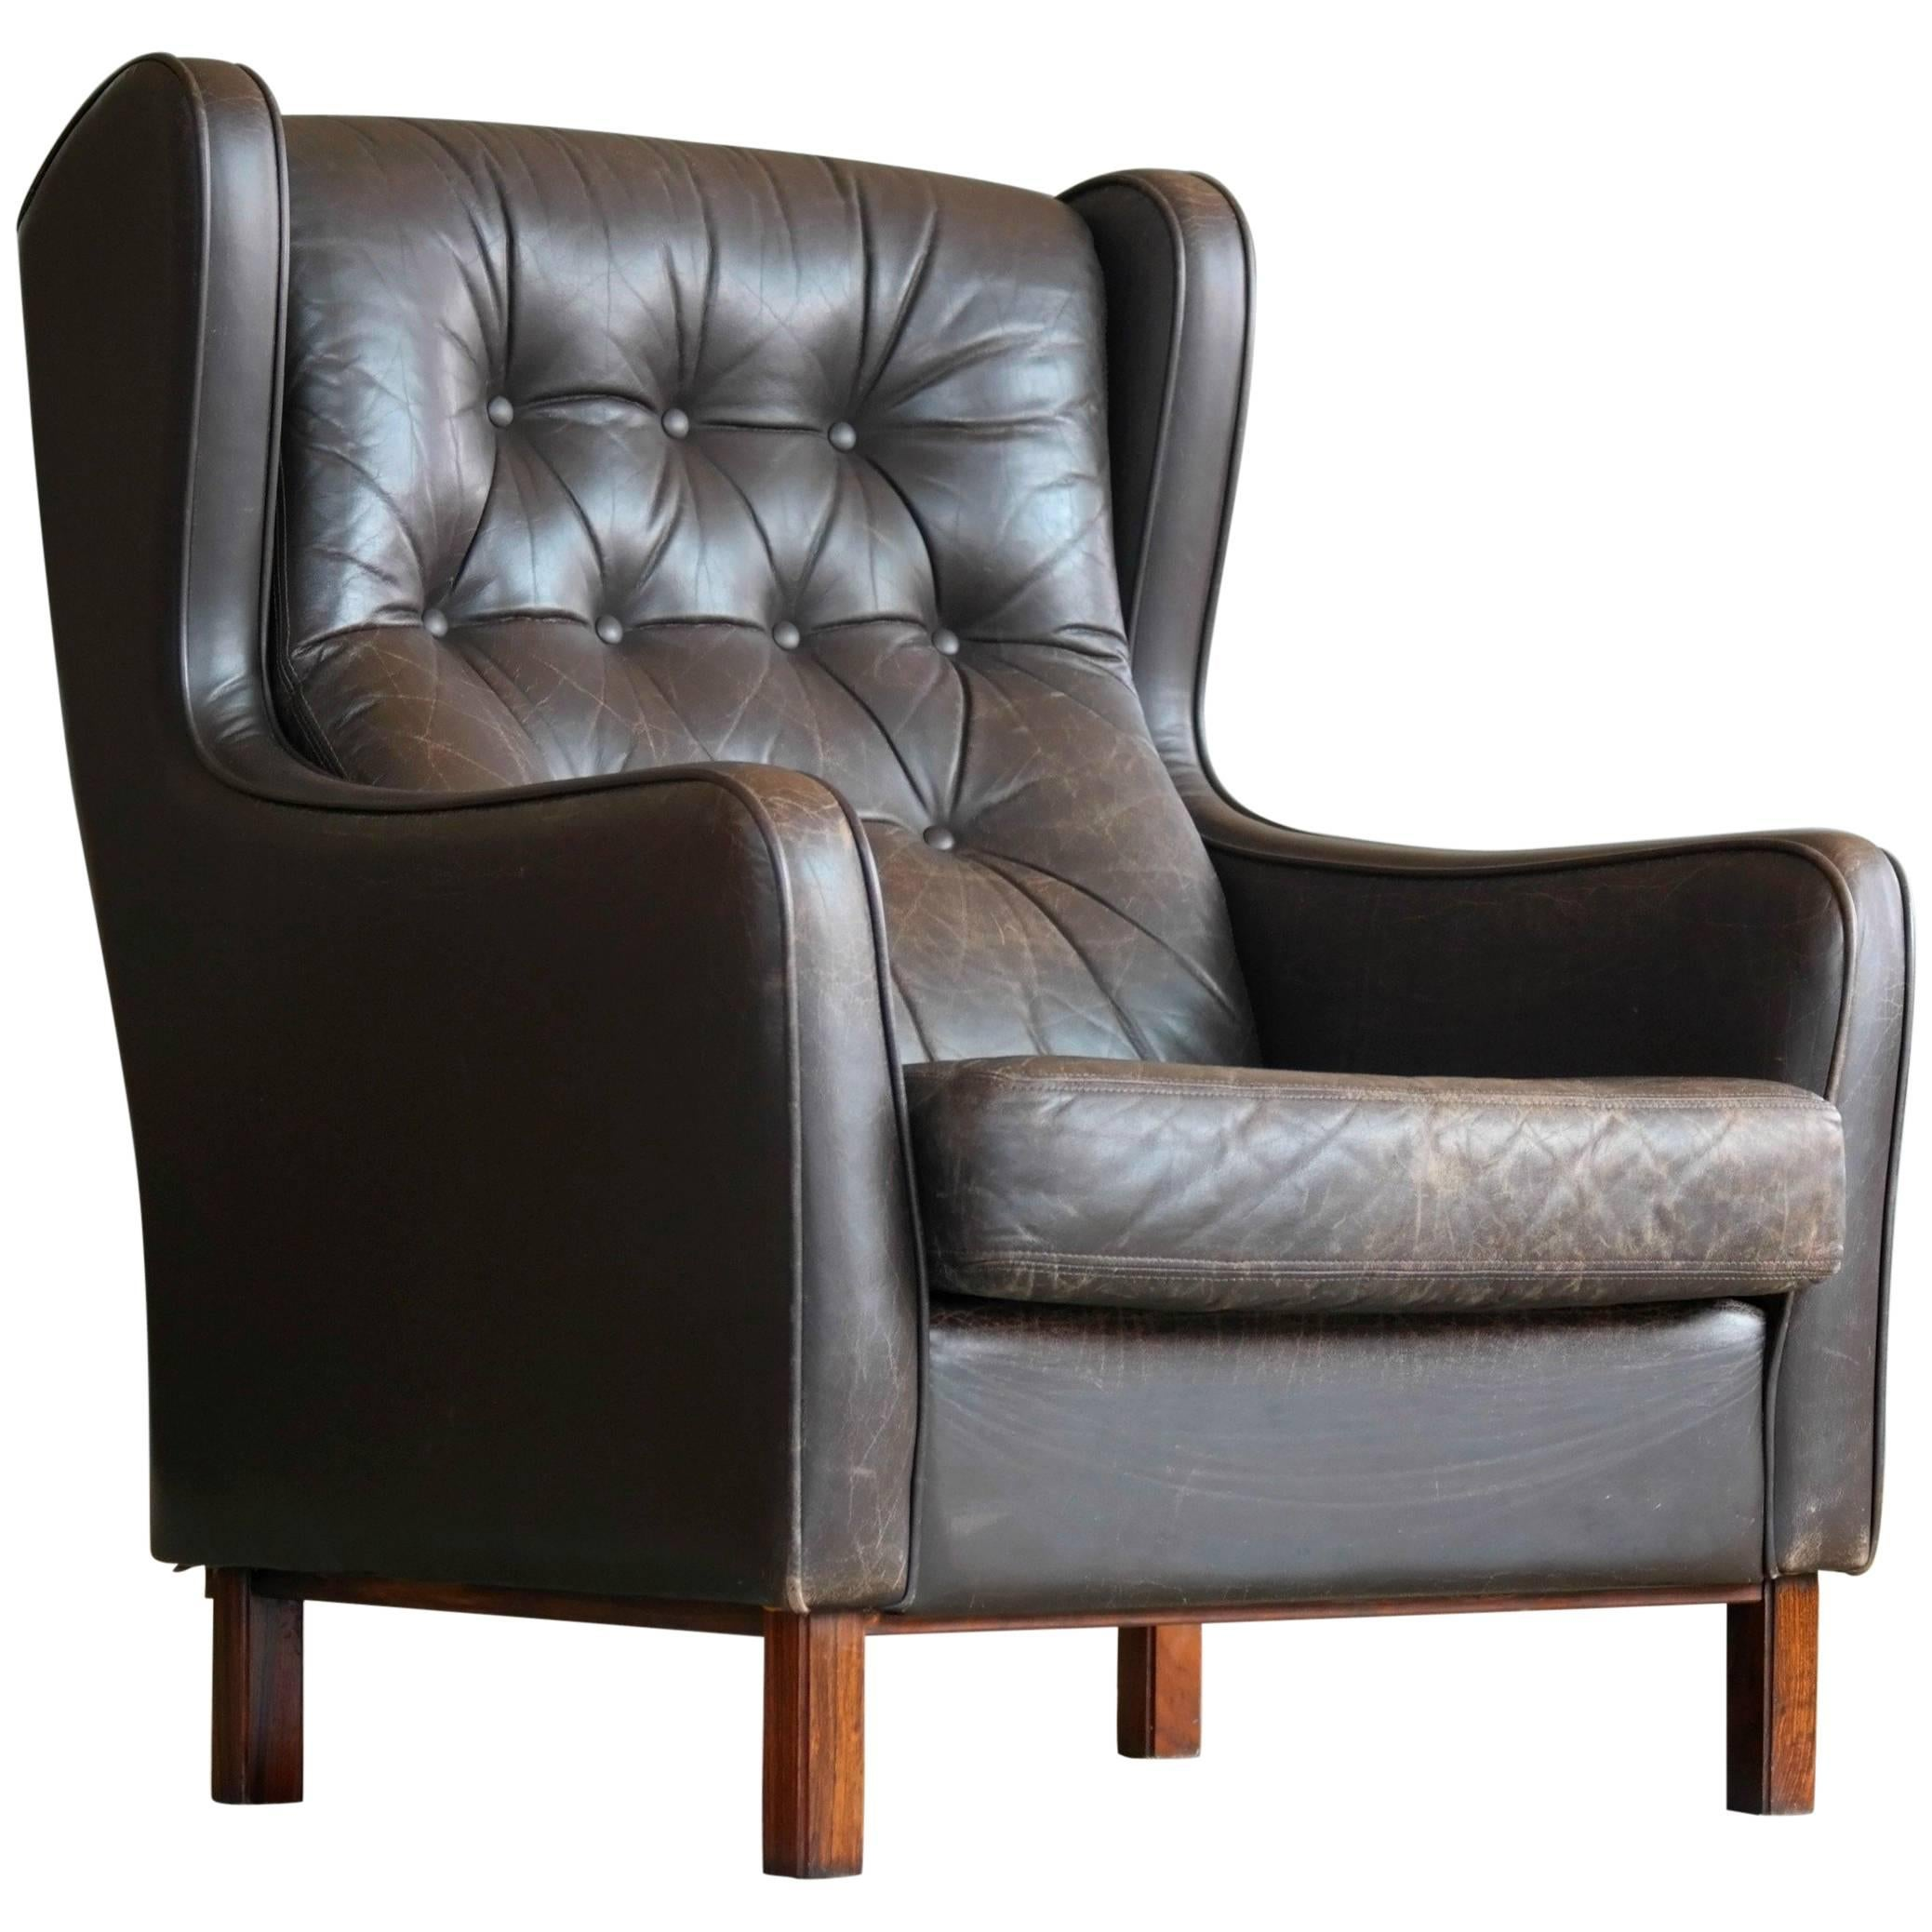 modern high back chairs for living room. brge mogensen style high back wing chair with tufted in espresso leather modern chairs for living room m